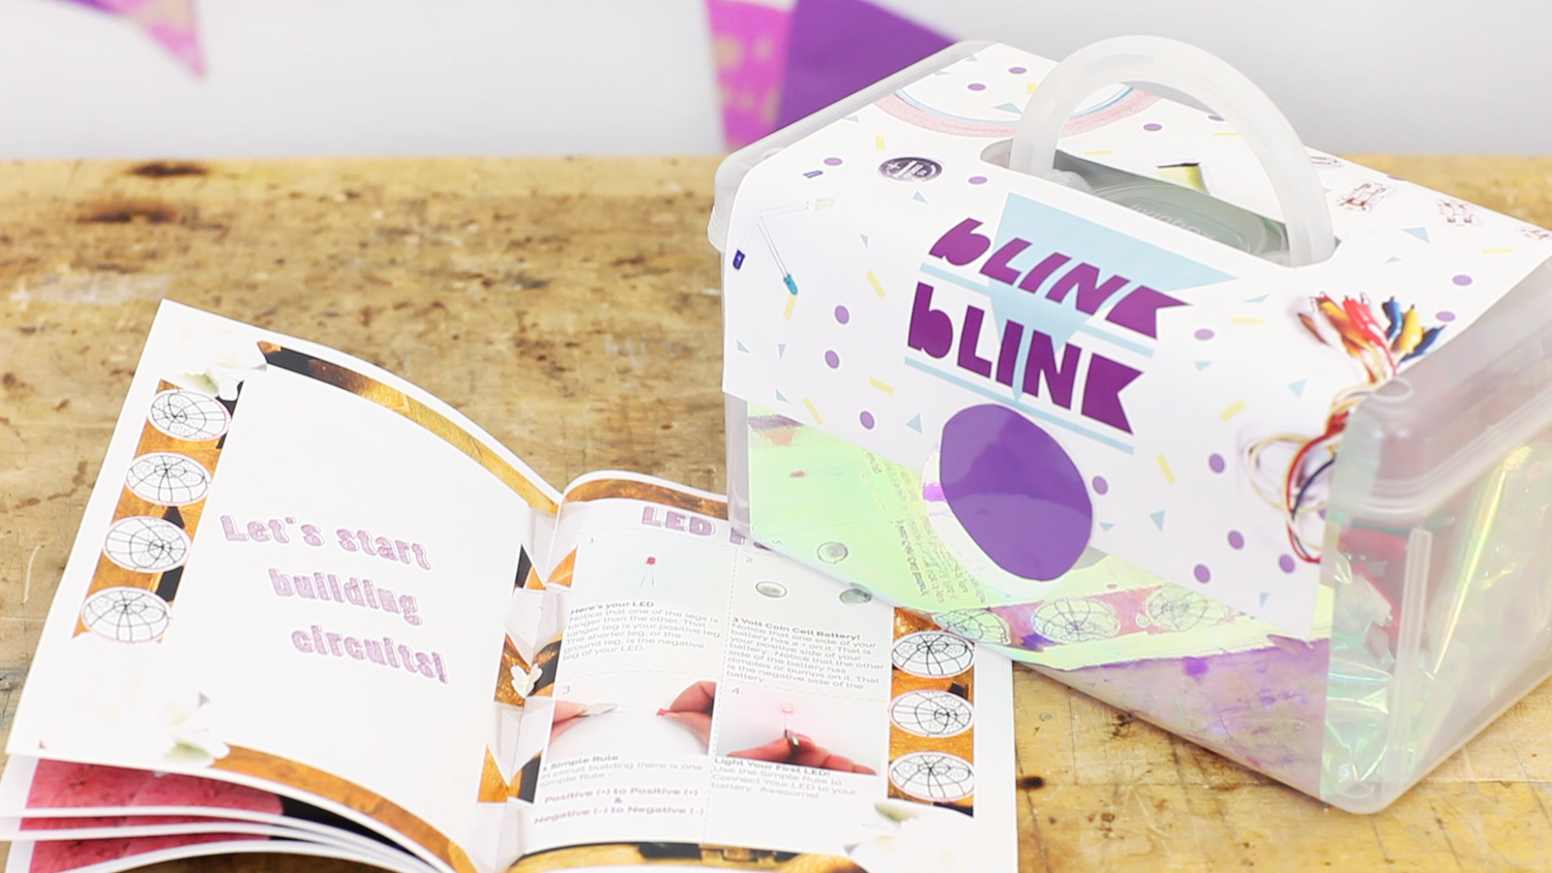 Blink Creative Circuit Kits For Girls By Joselyn Mcdonald Homemade Play Dough Circuits Are A Great Provide Materials To Make Fun Diy Art Fashion Projects With